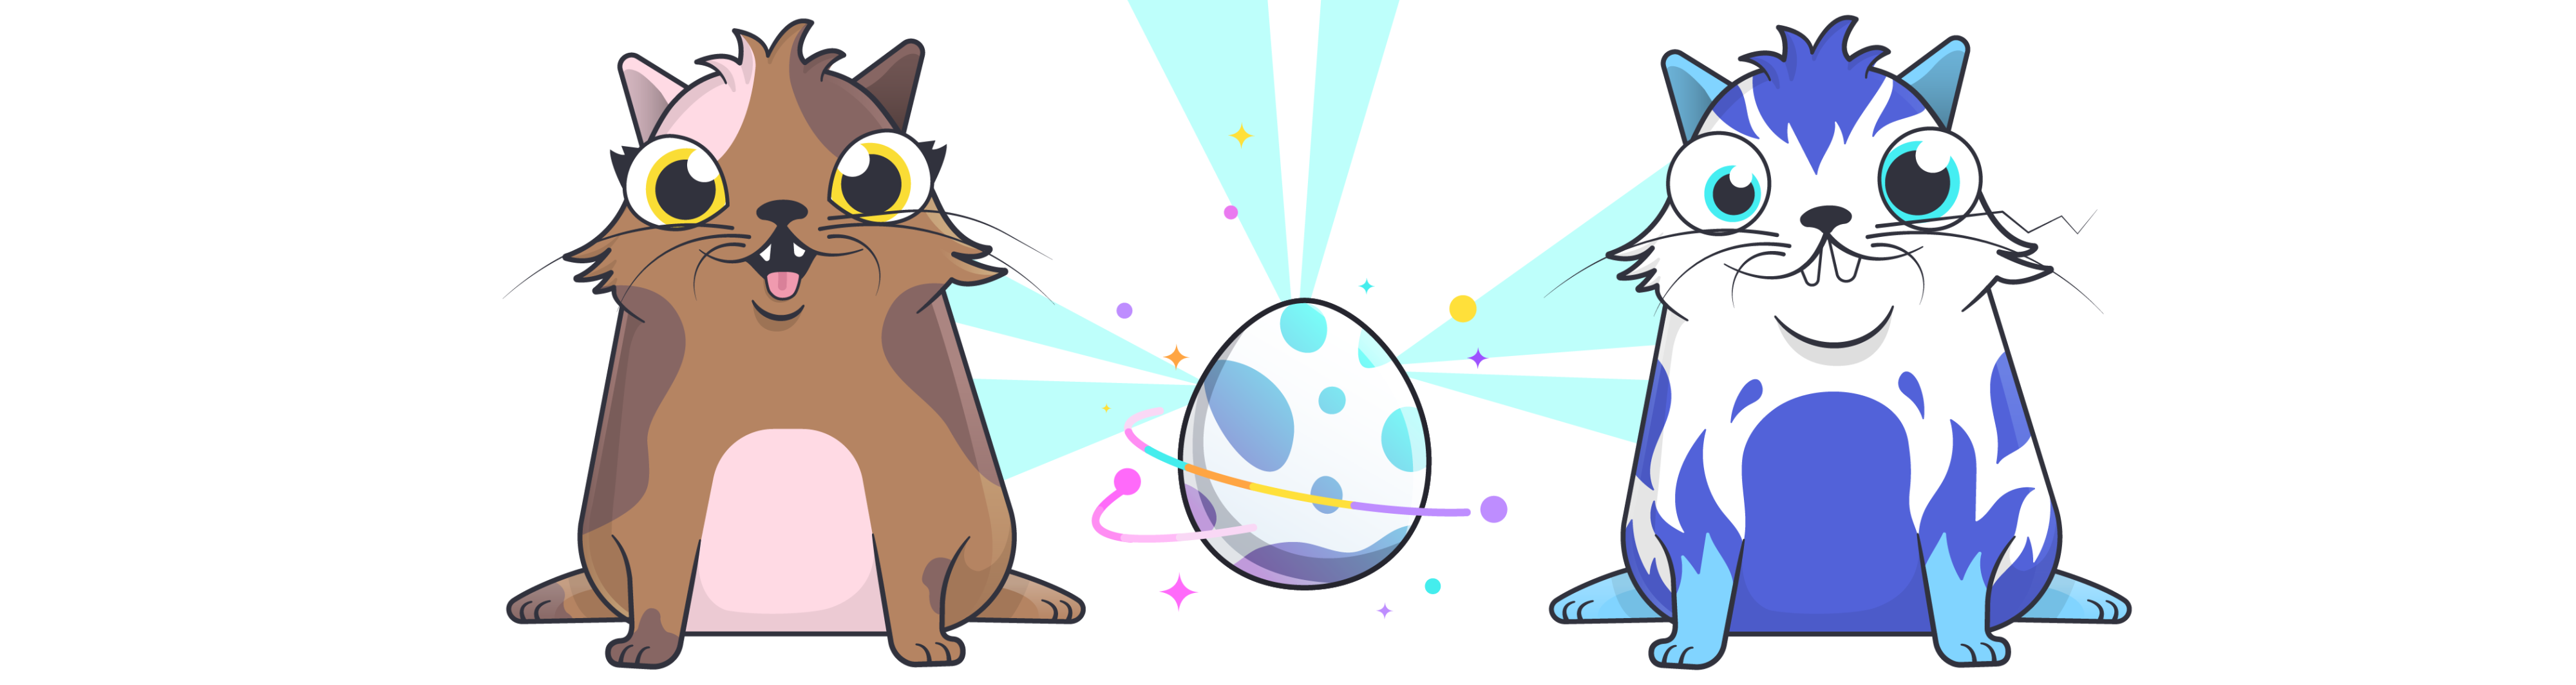 Some of the rarest CryptoKitties will stop being released on November 30th